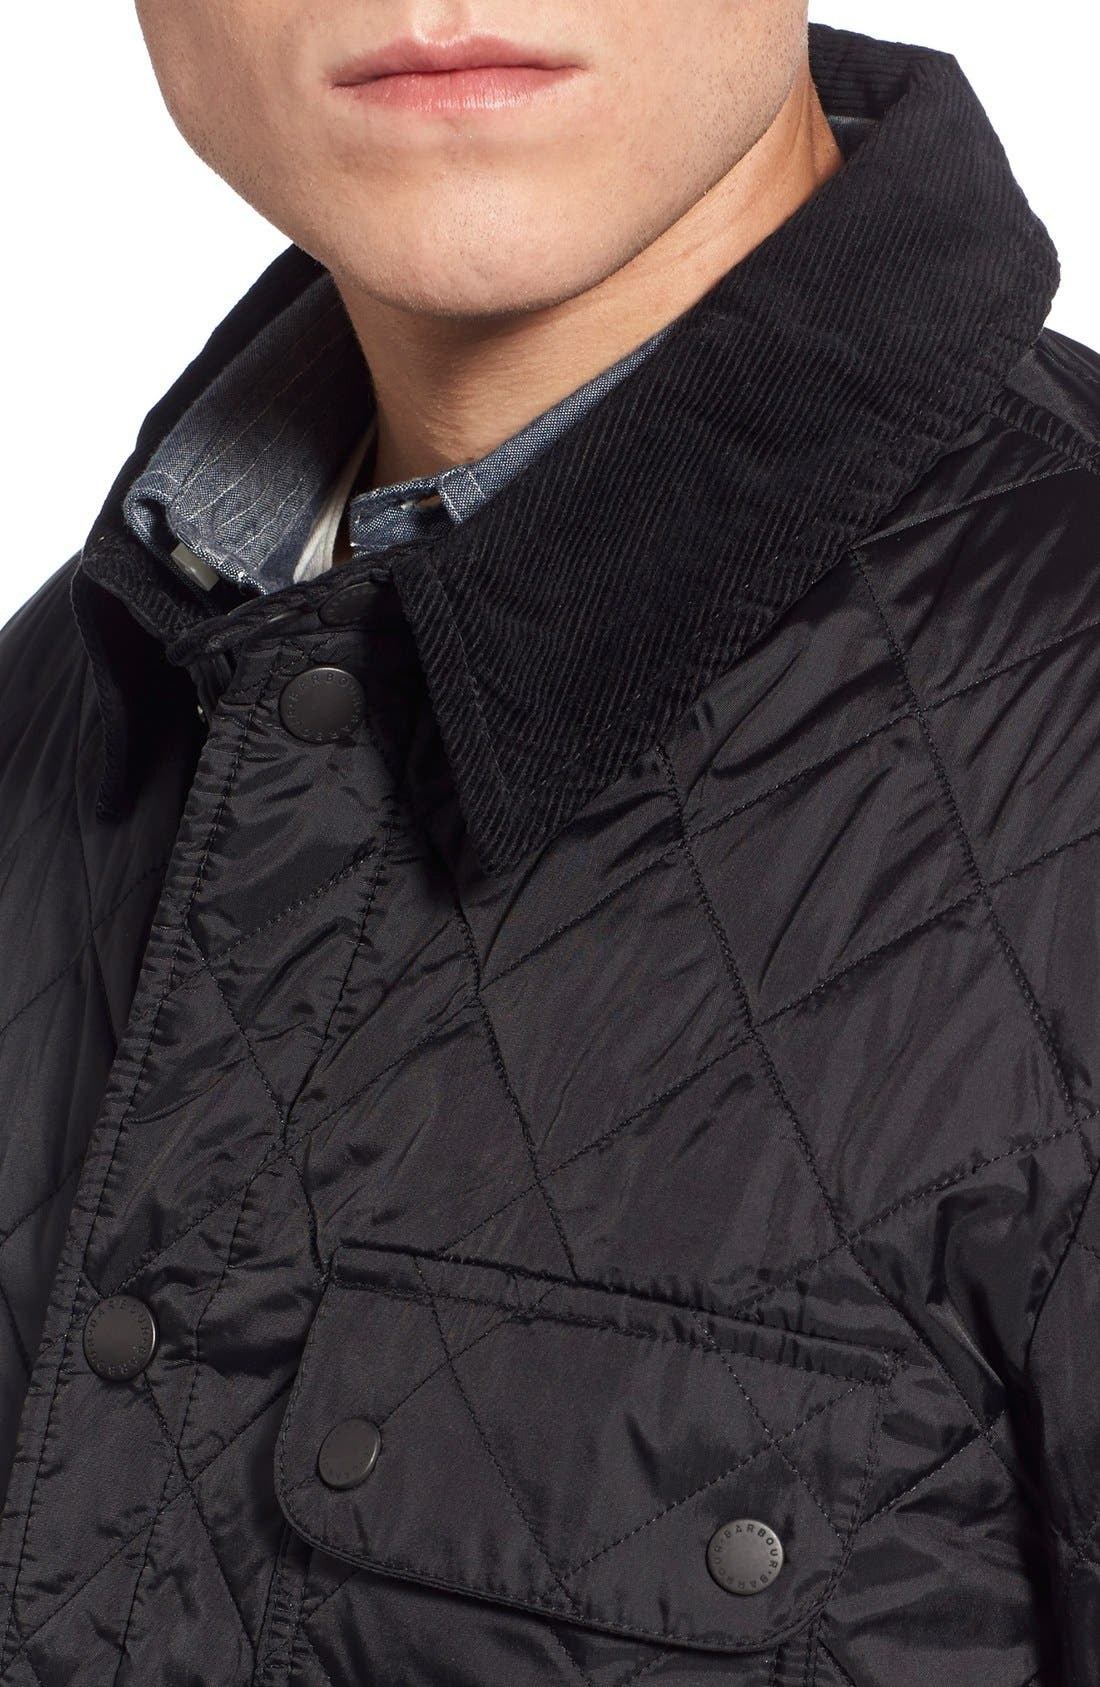 'Tinford' Regular Fit Quilted Jacket,                             Alternate thumbnail 5, color,                             001